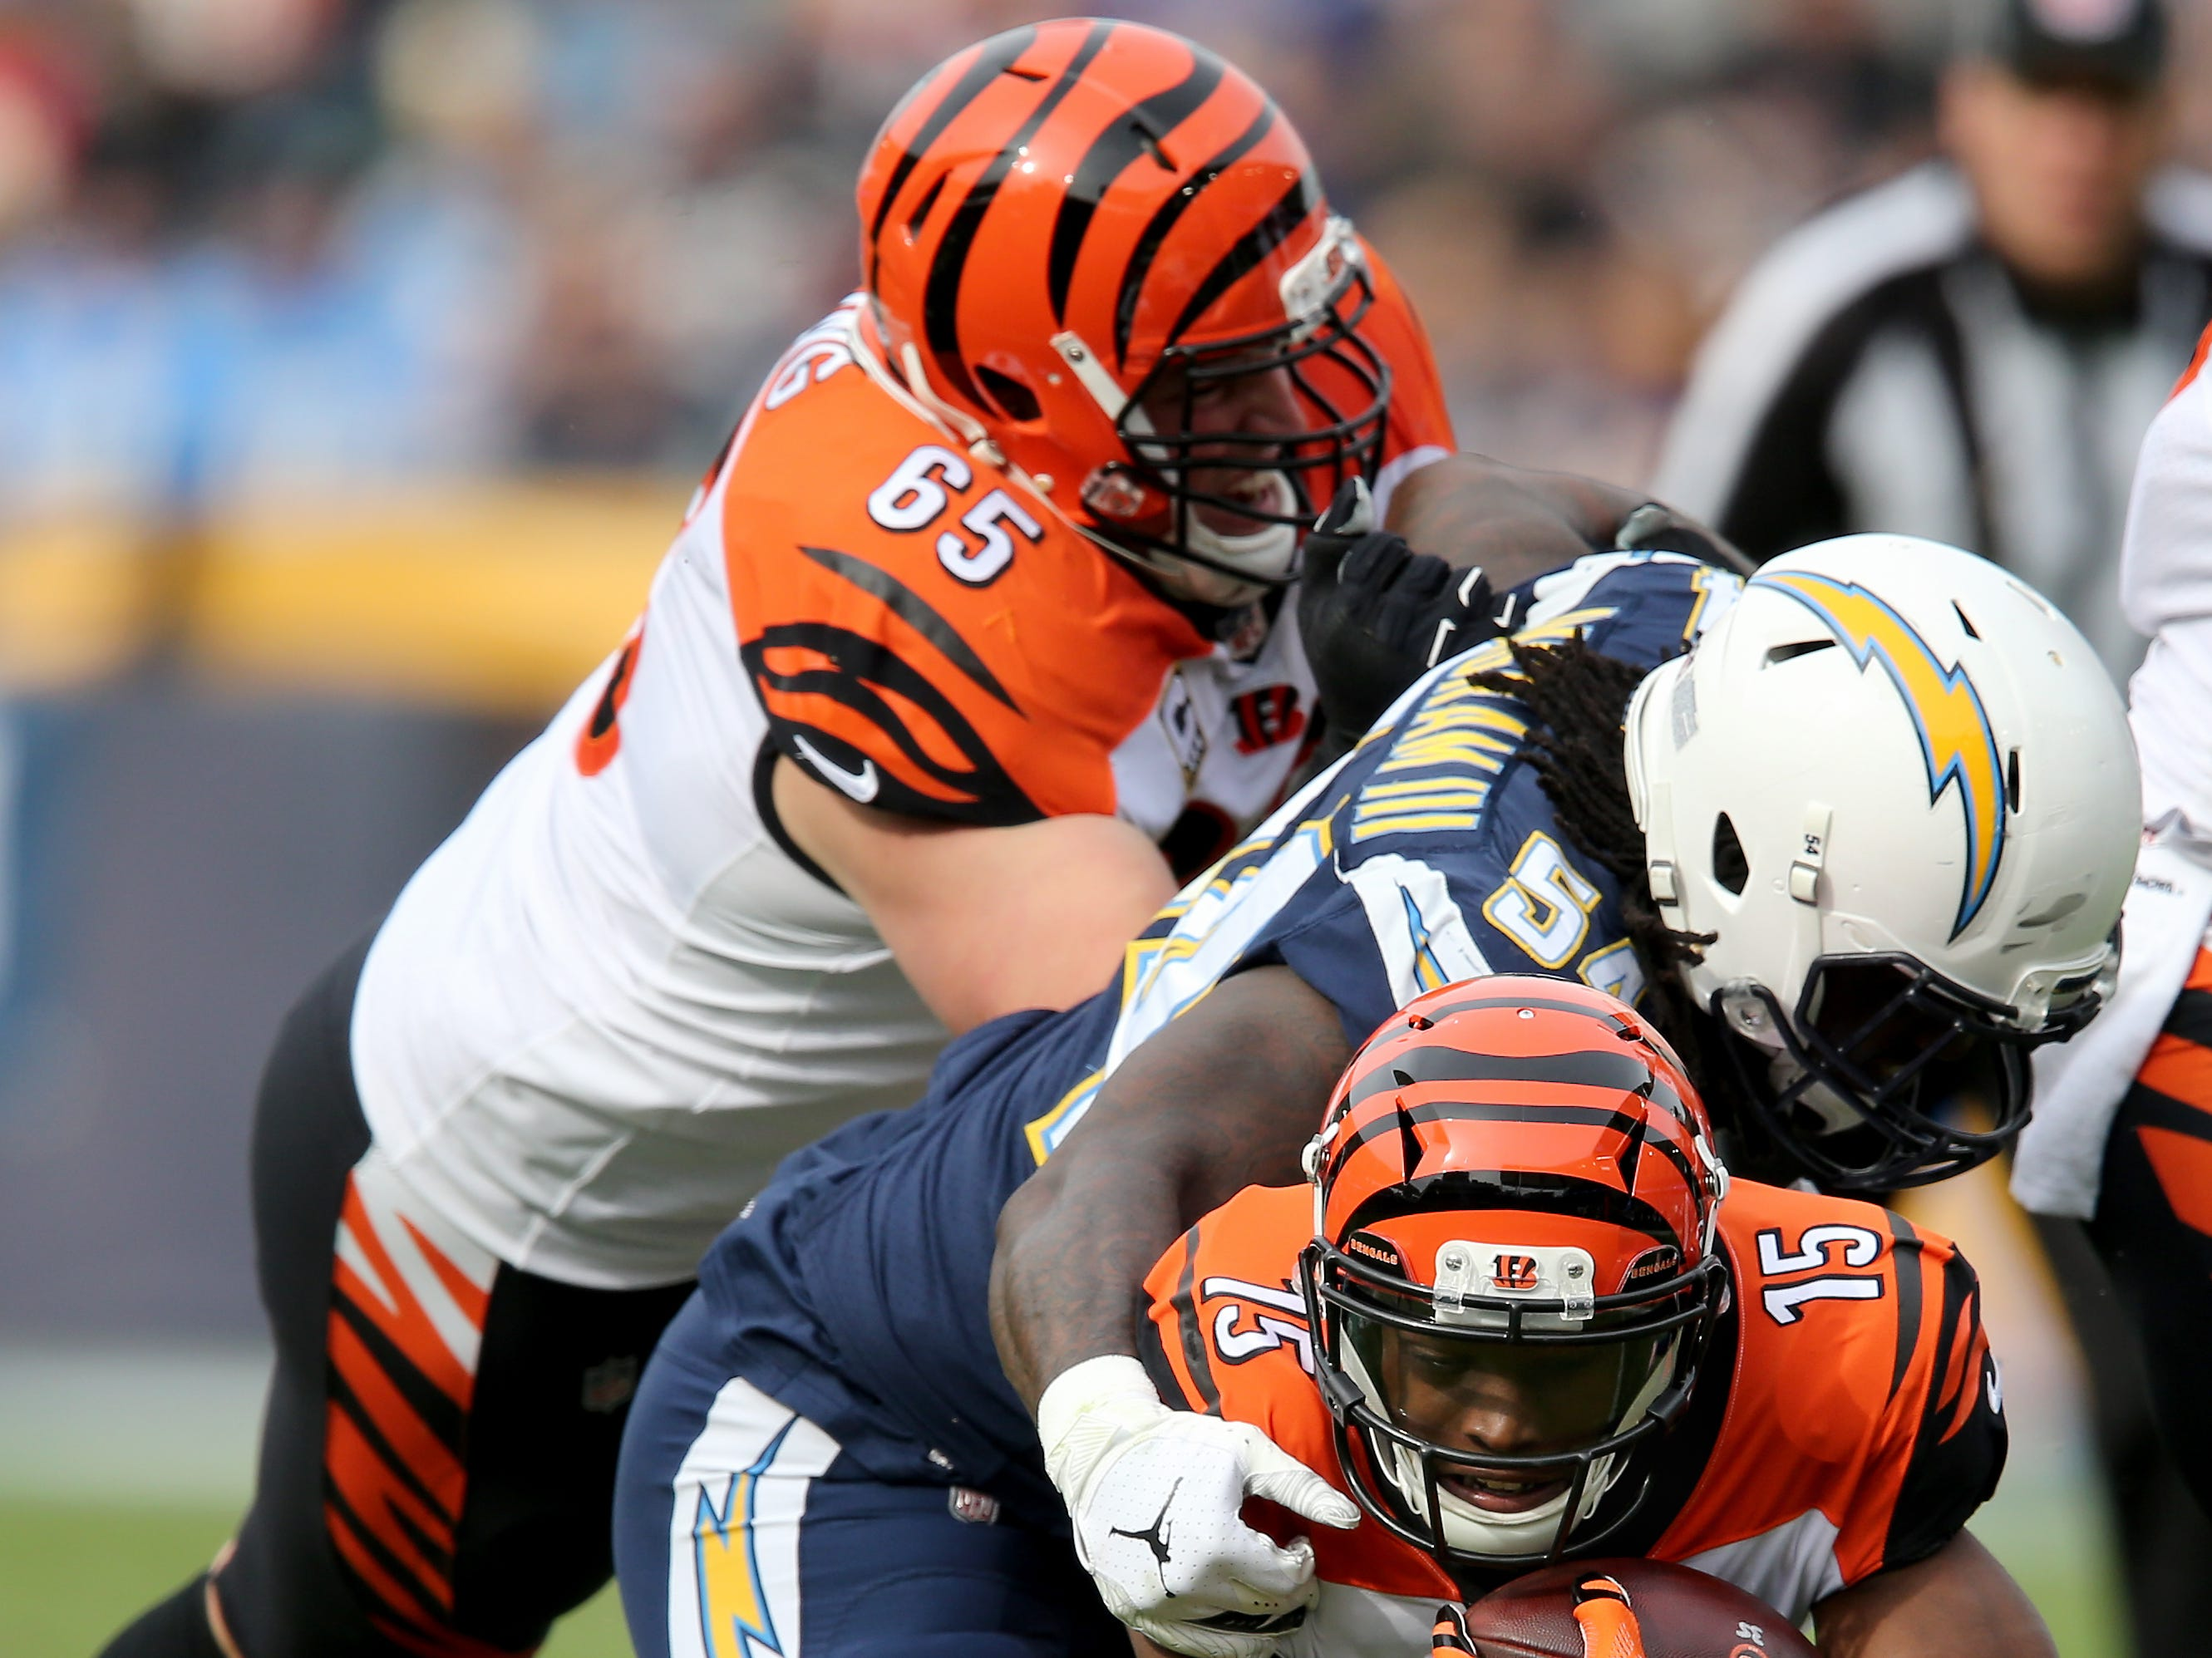 Cincinnati Bengals wide receiver John Ross (15) dives for the end zone in the first quarter of a Week 14 NFL football game against the Los Angeles Chargers, Sunday, Dec. 9, 2018, at StubHub Center in Carson, California.